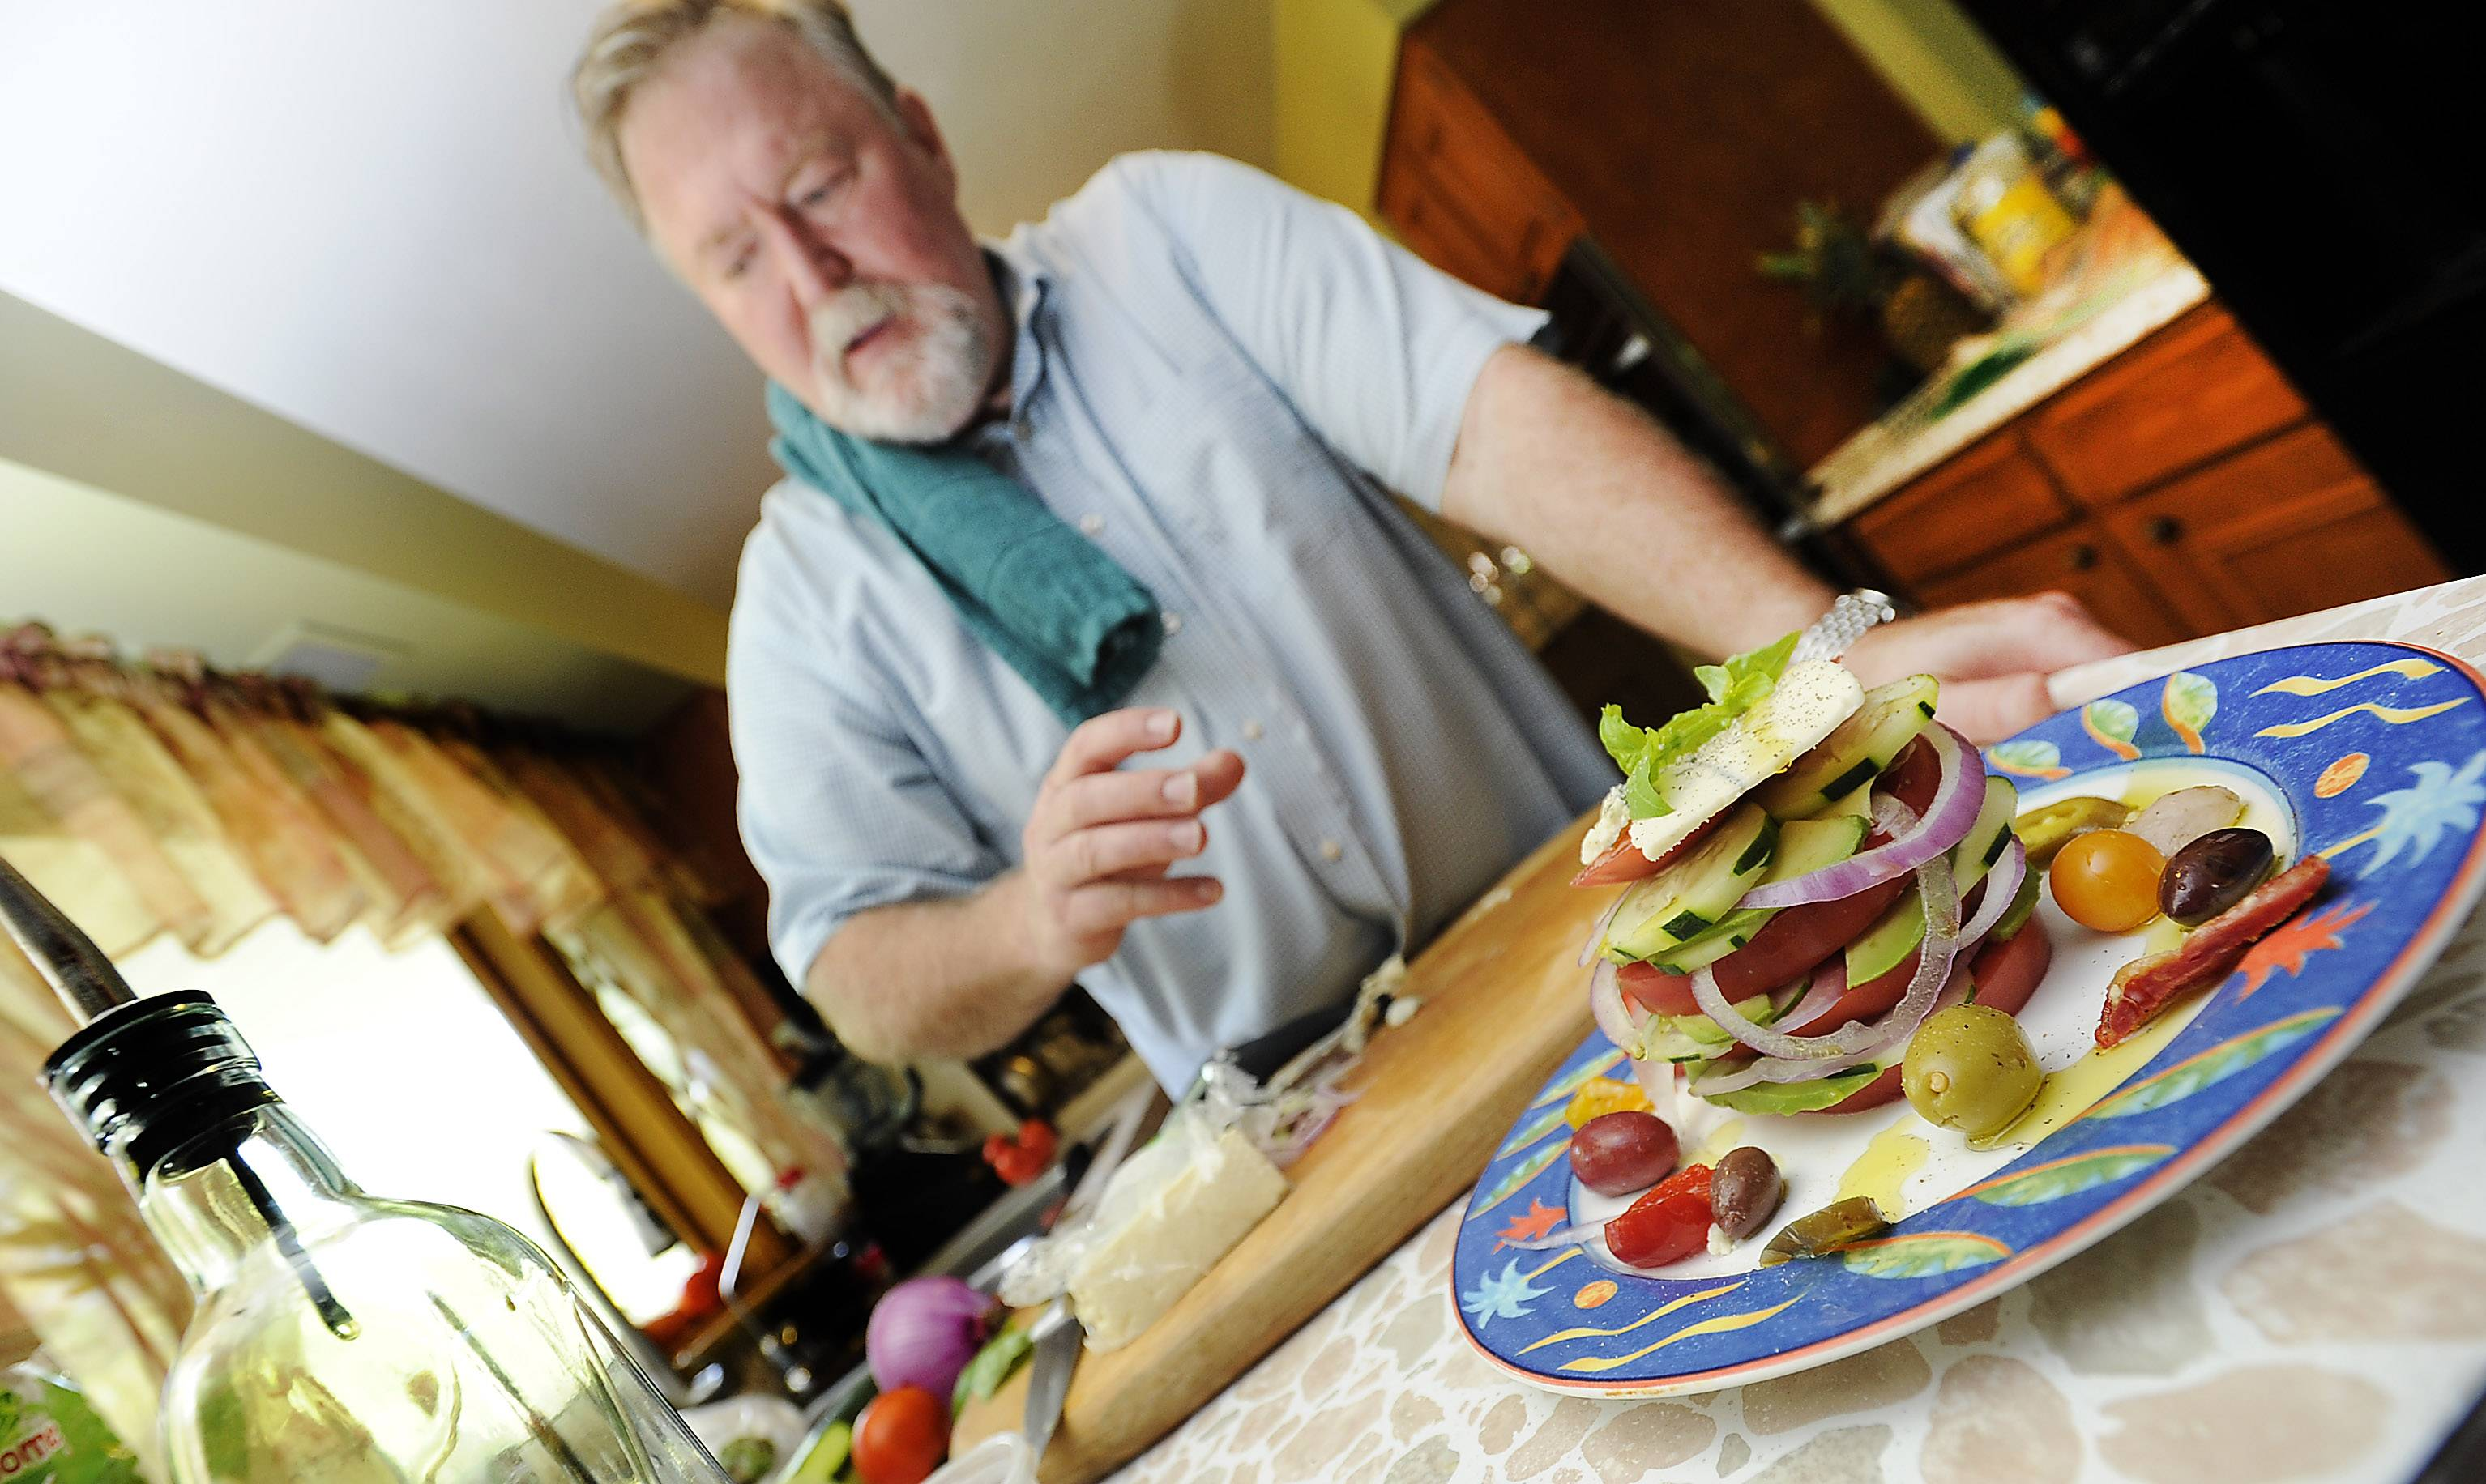 Kevin Kilgore uses tomatoes from his backyard garden for his Fat Stax Tomato Salad.